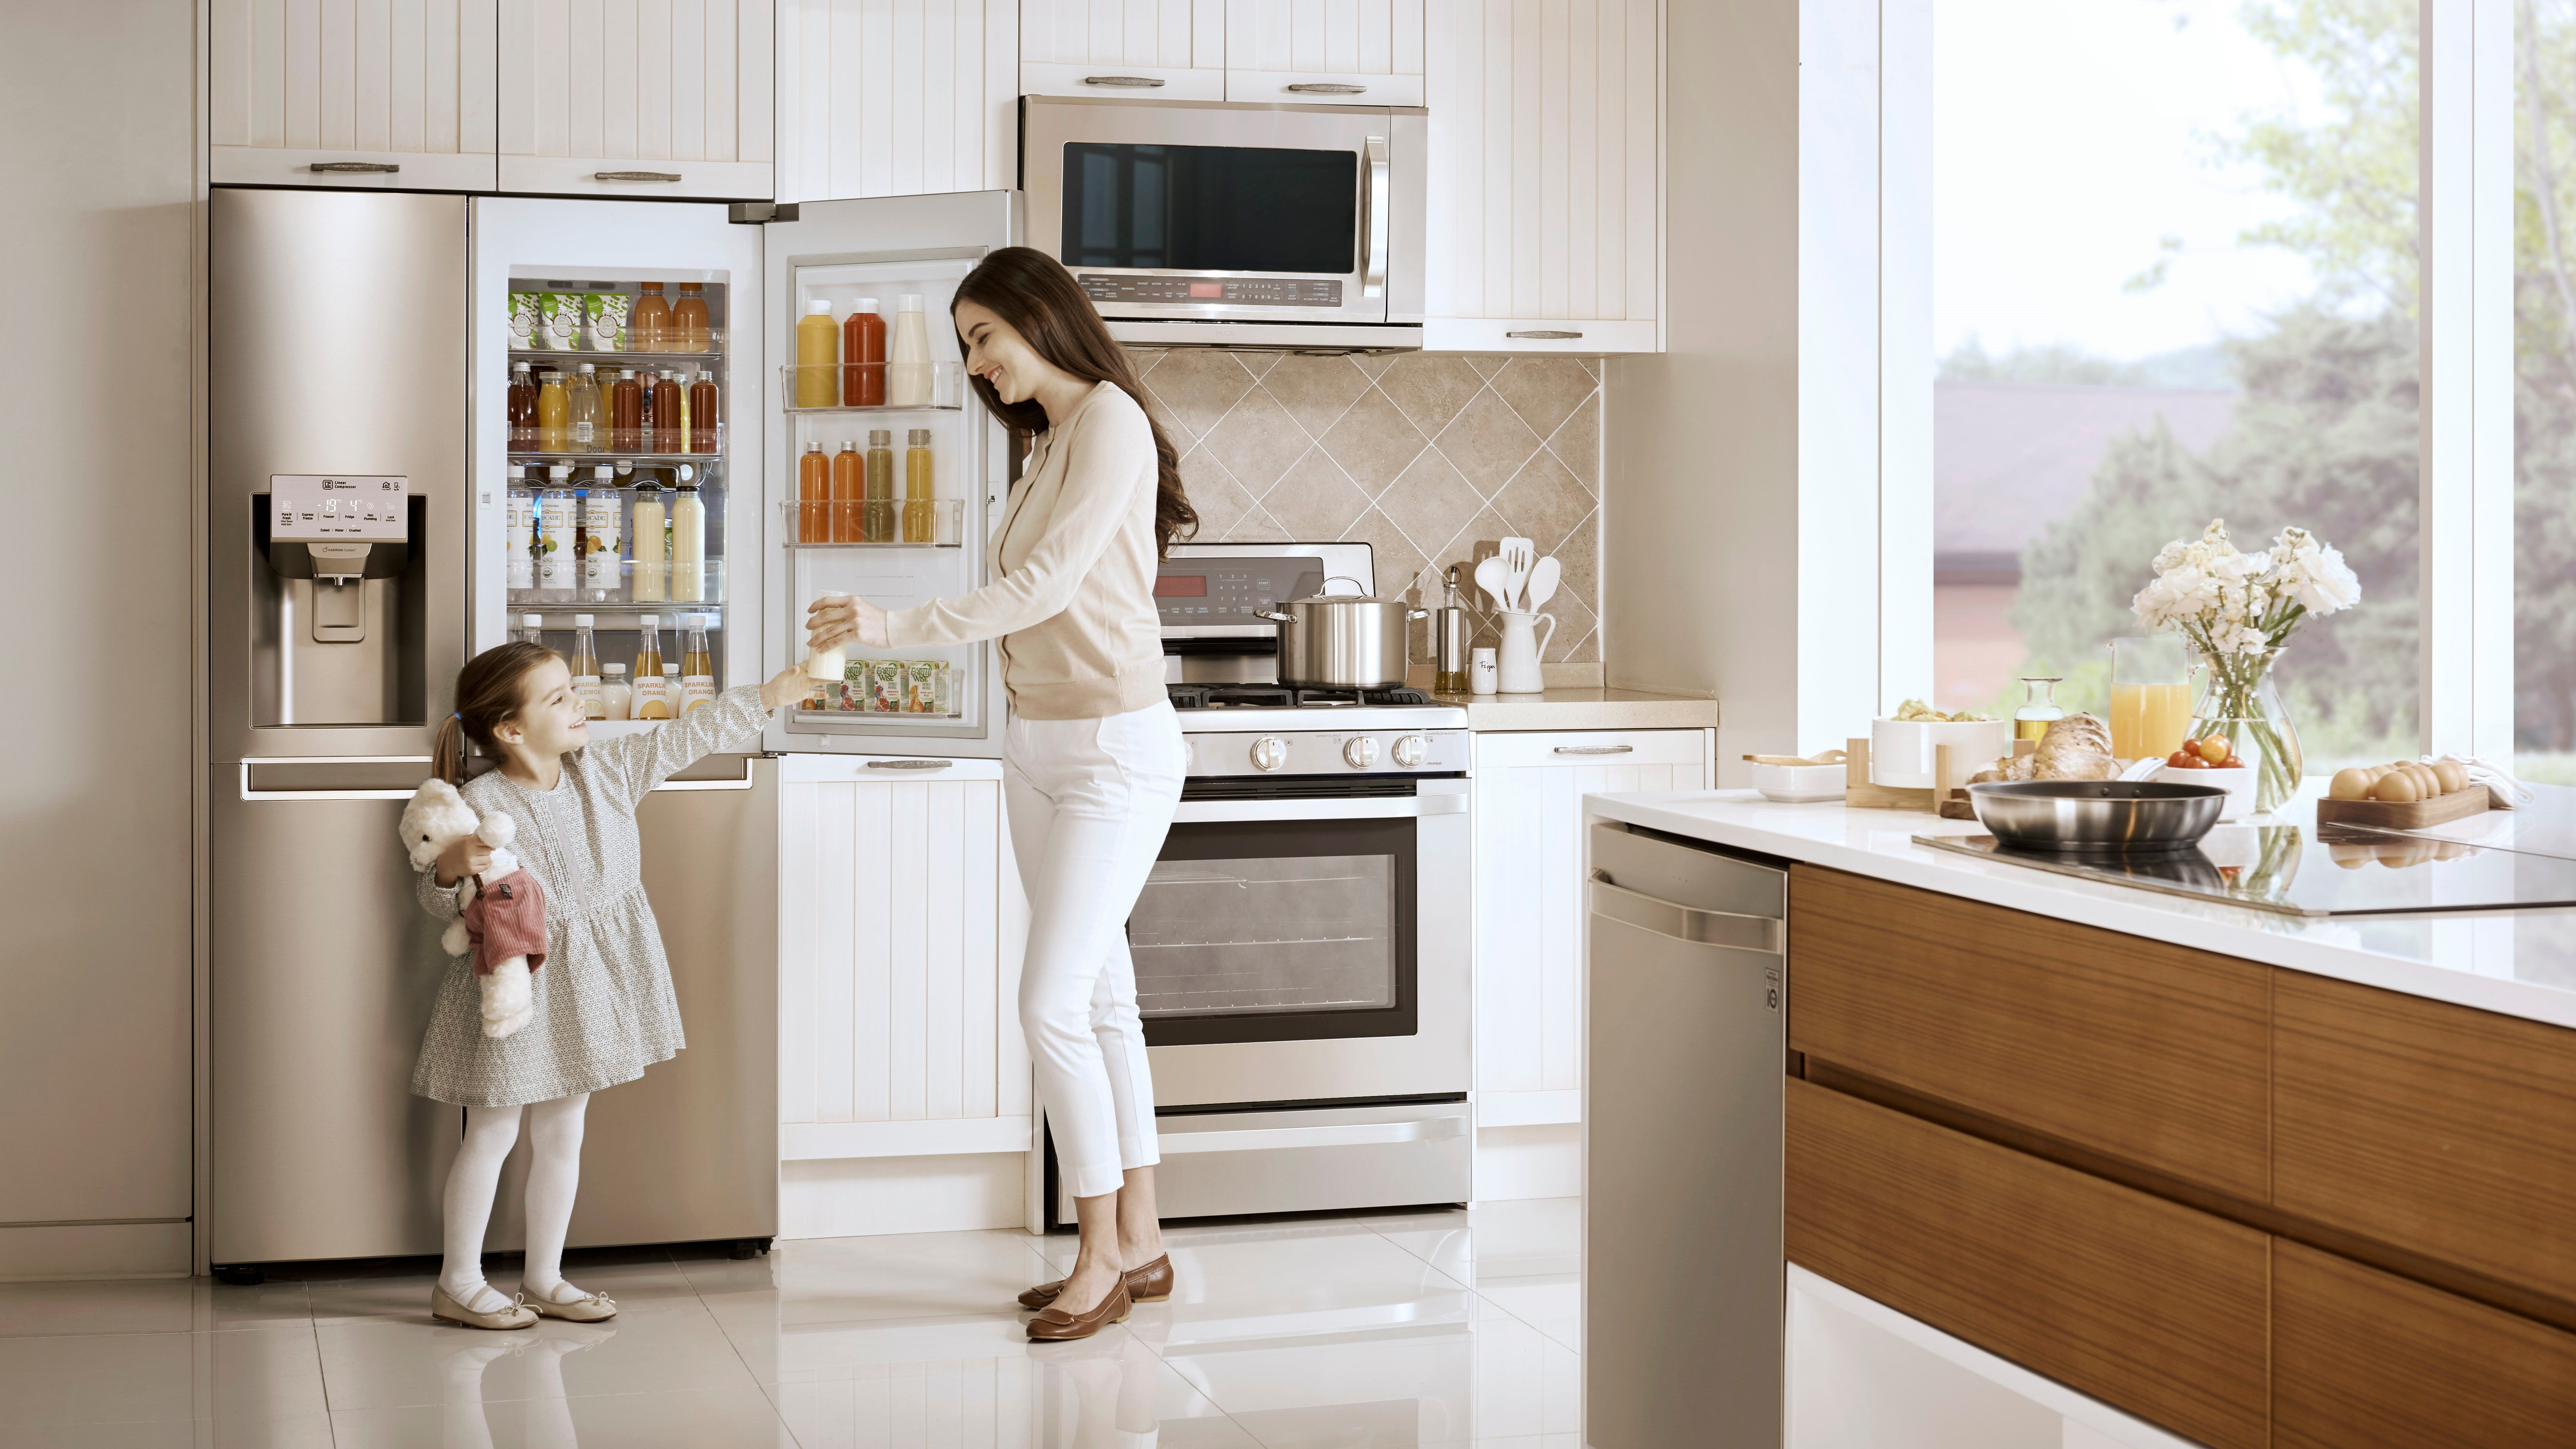 First ever 20 year warranty on a fridge with lg centum Kitchen appliance reviews uk